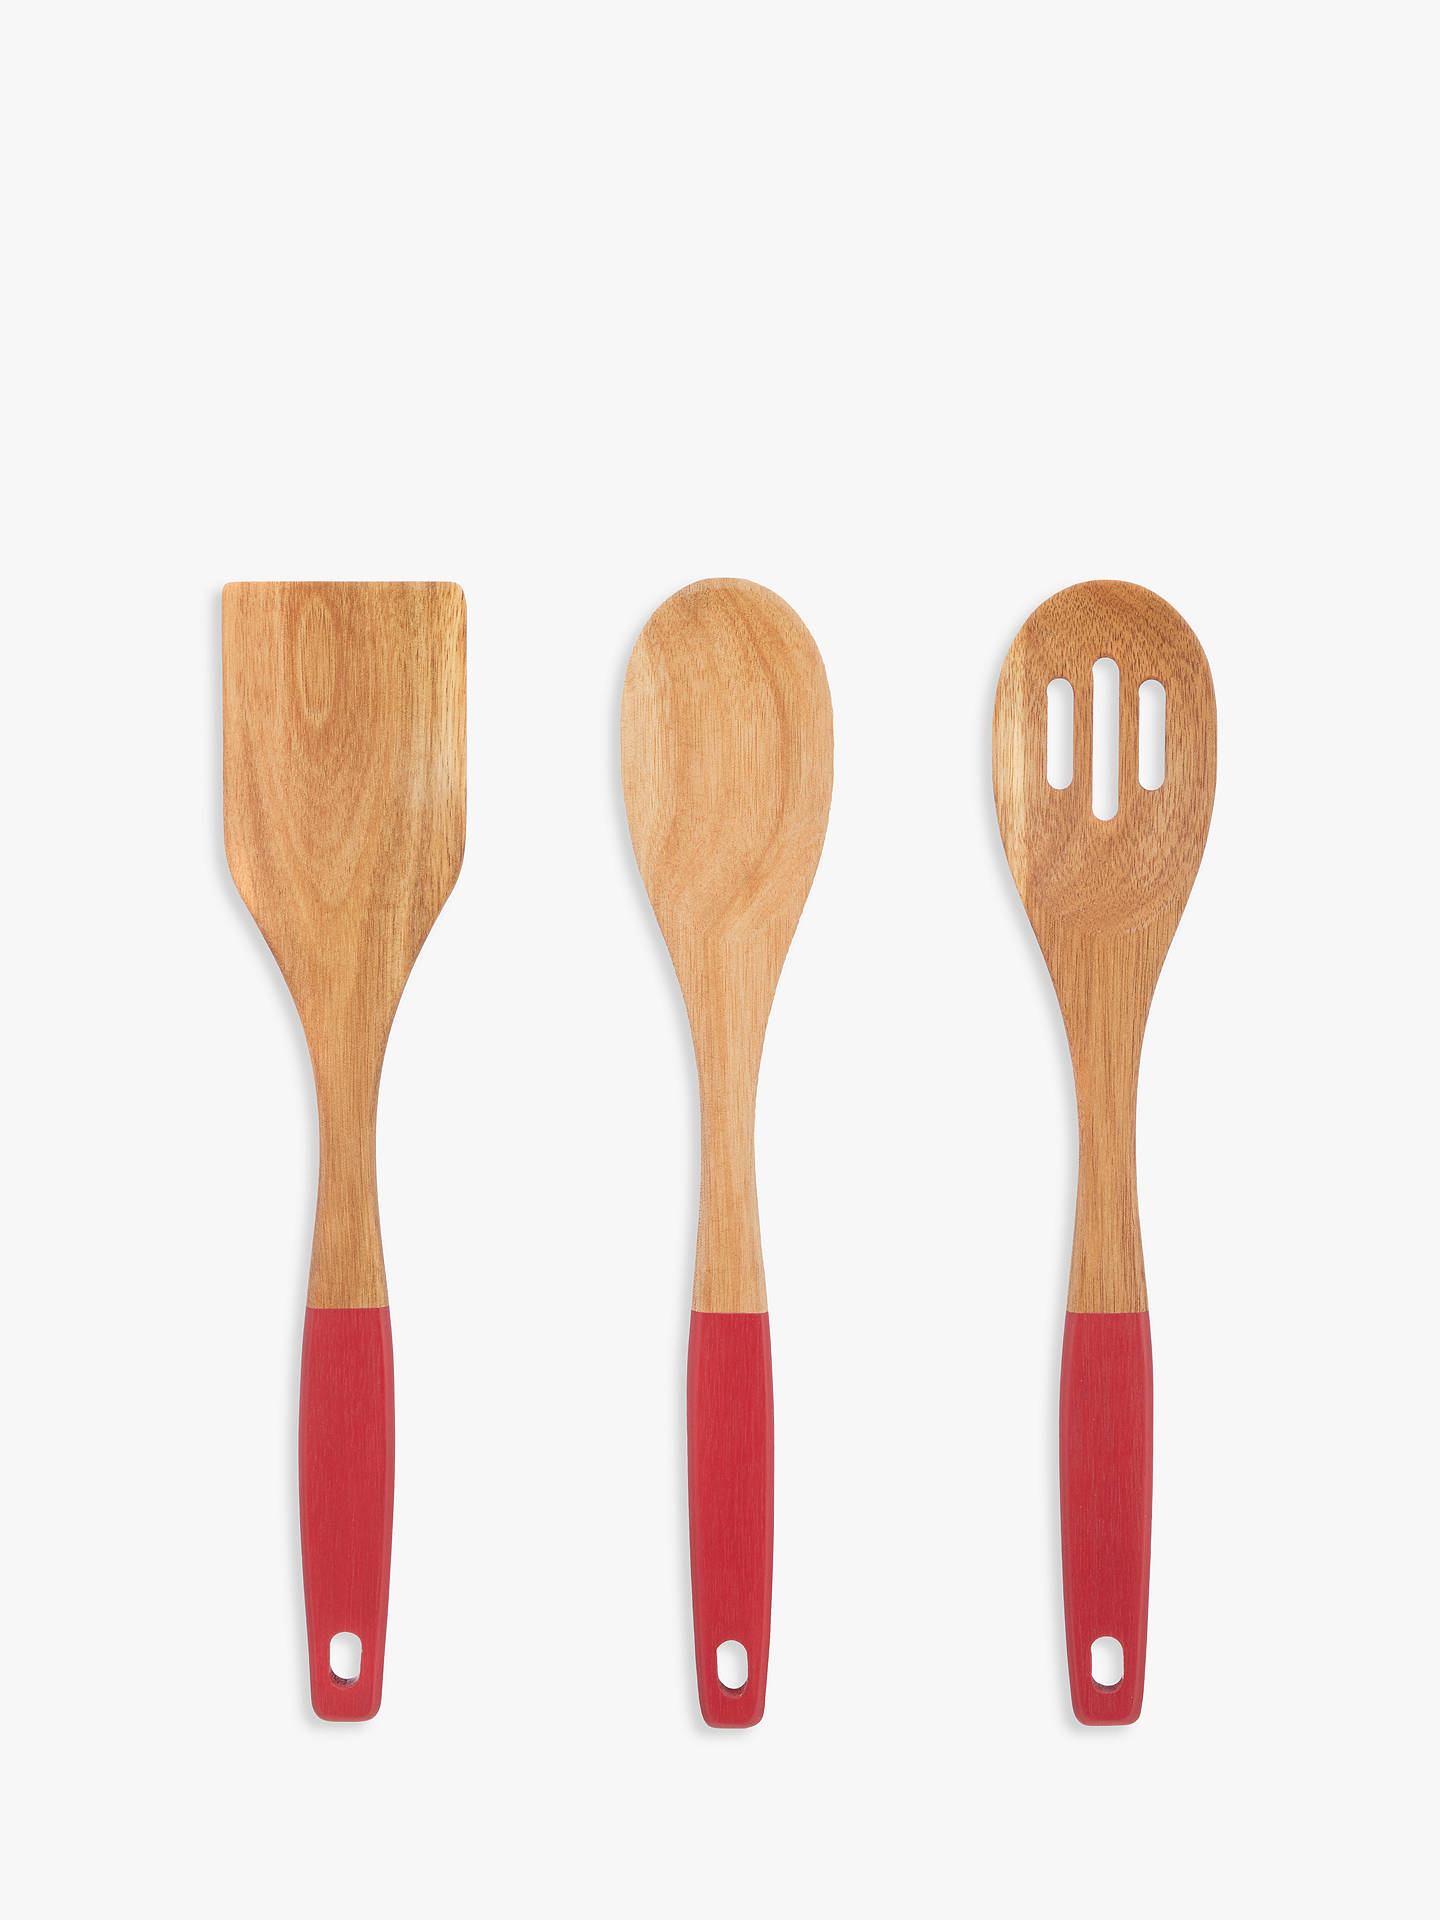 Buy John Lewis & Partners Dipped Wood Utensils, Natural/Red, Set of 3 Online at johnlewis.com